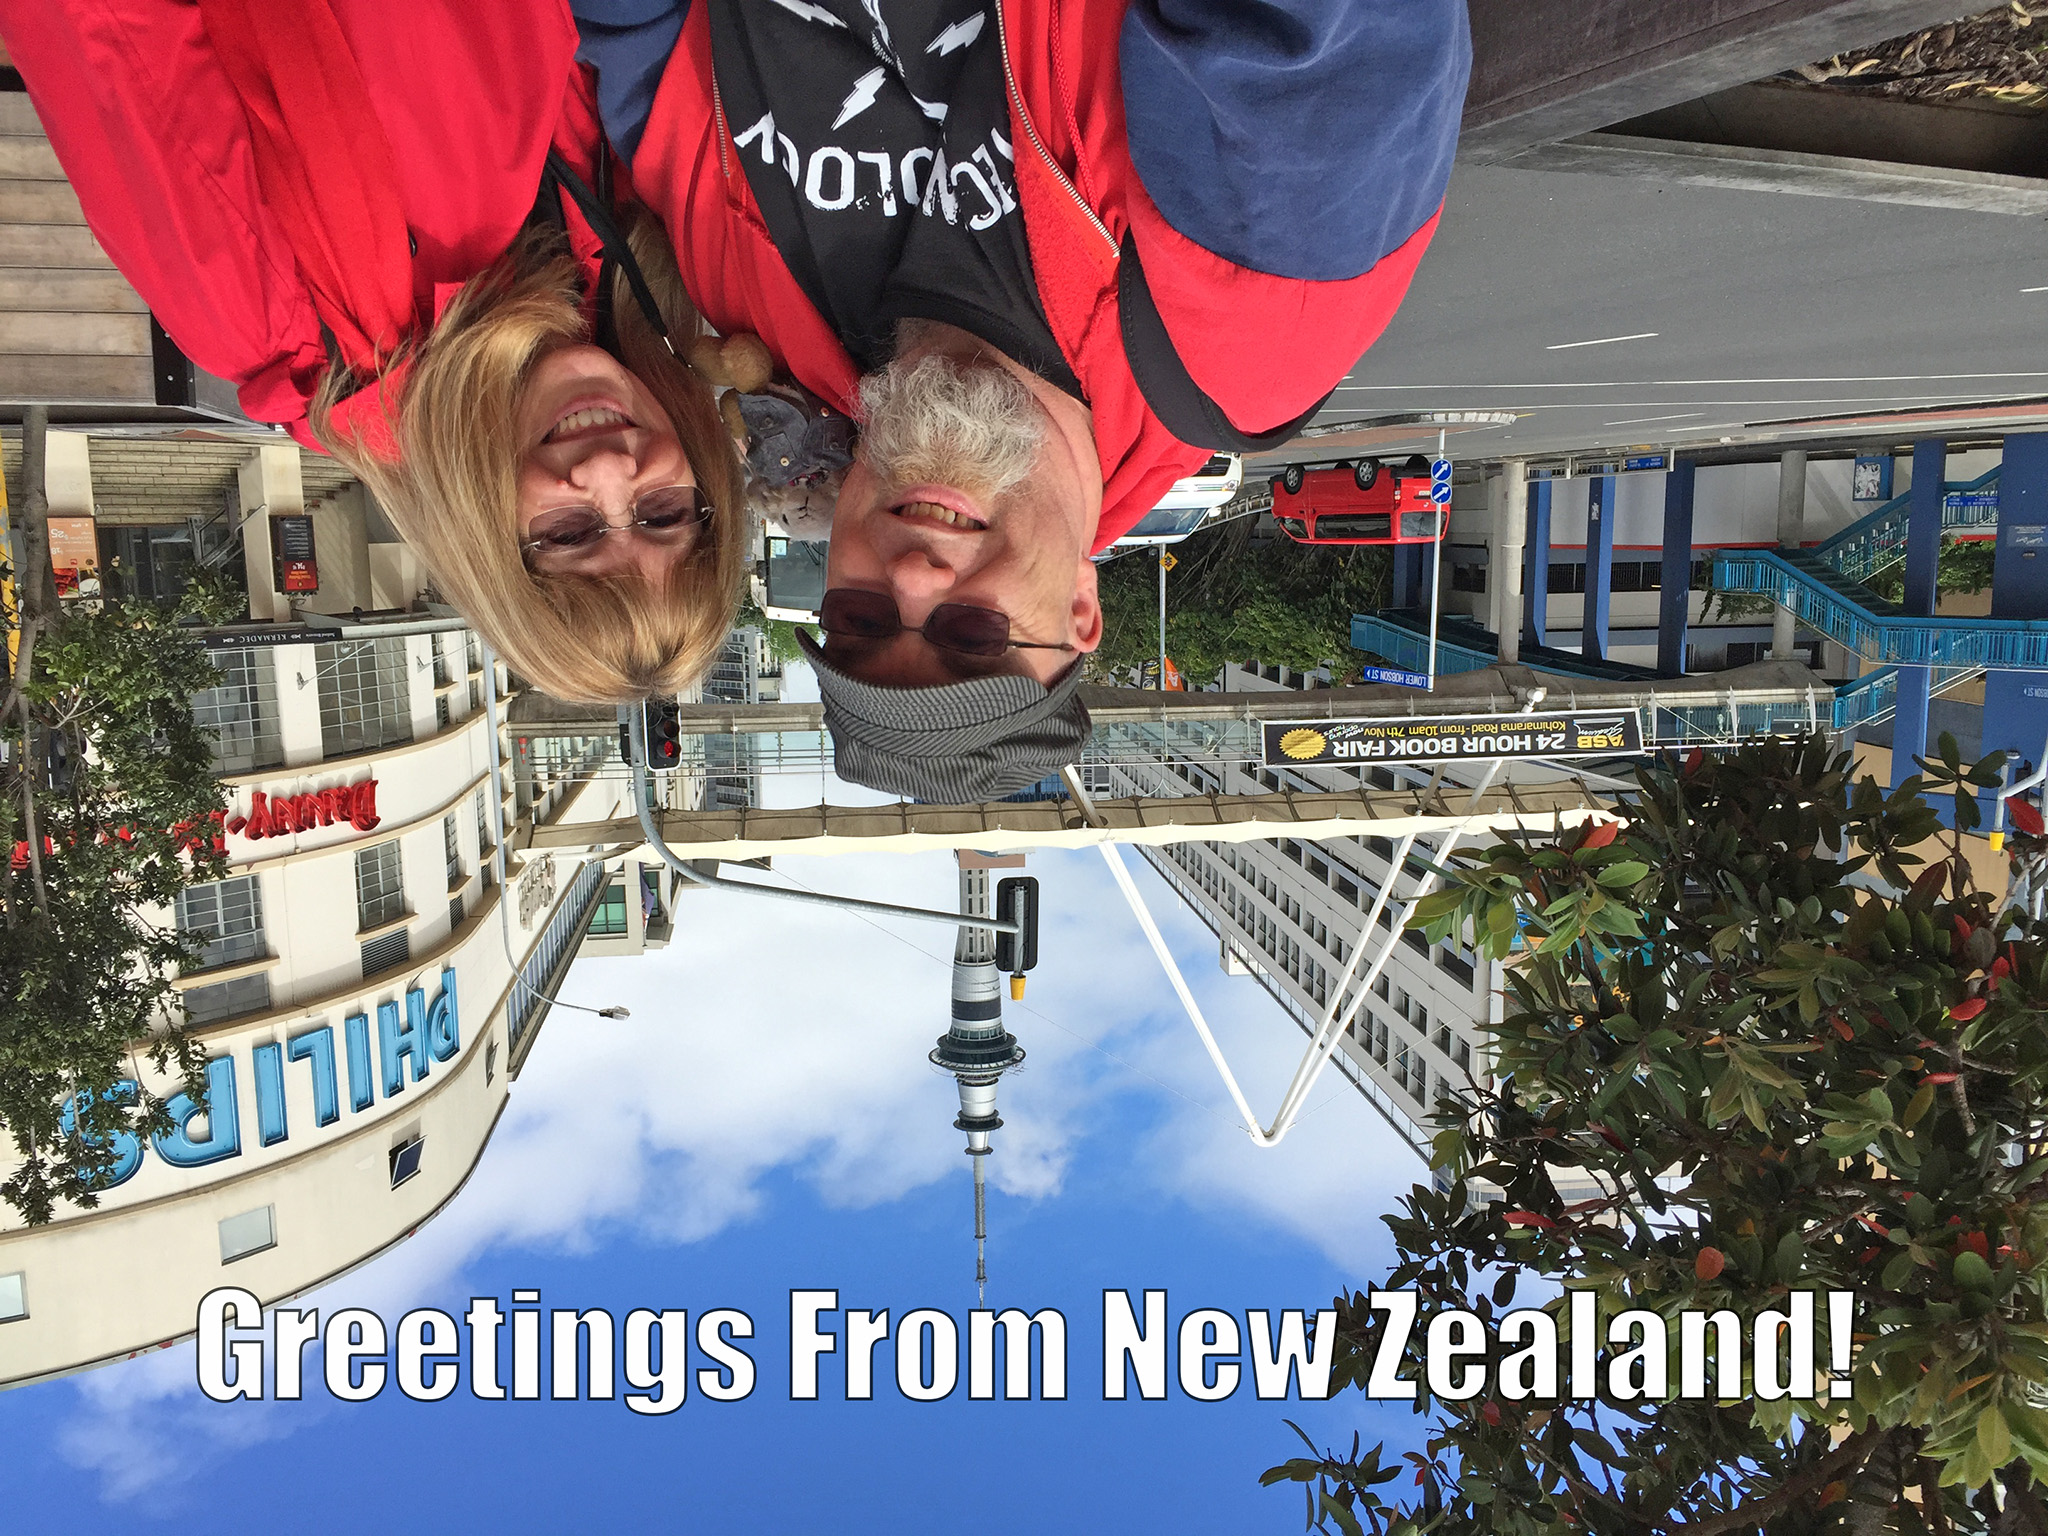 Greetings From New Zealand